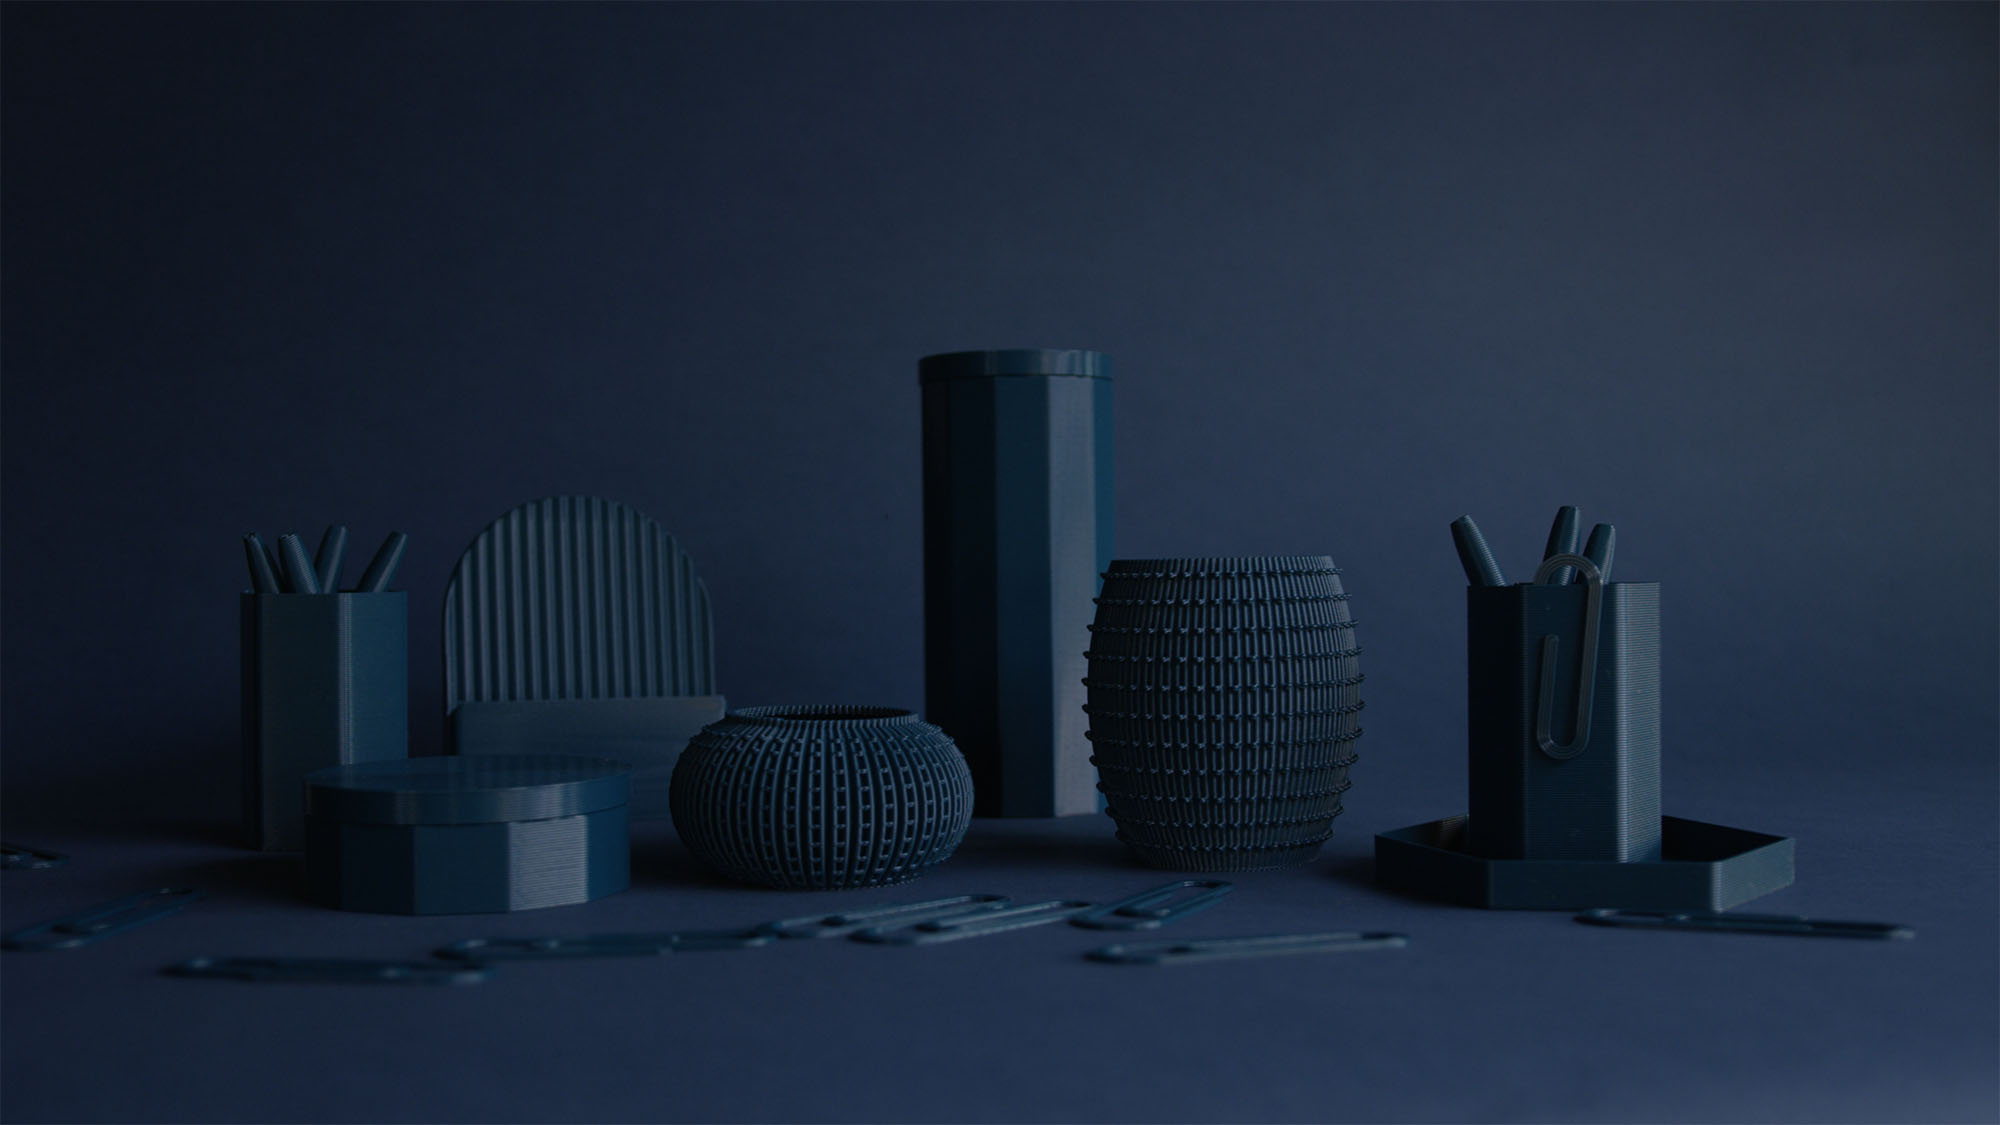 The Batch.works homeware collection in Ocean blue. Image via Batch.works.